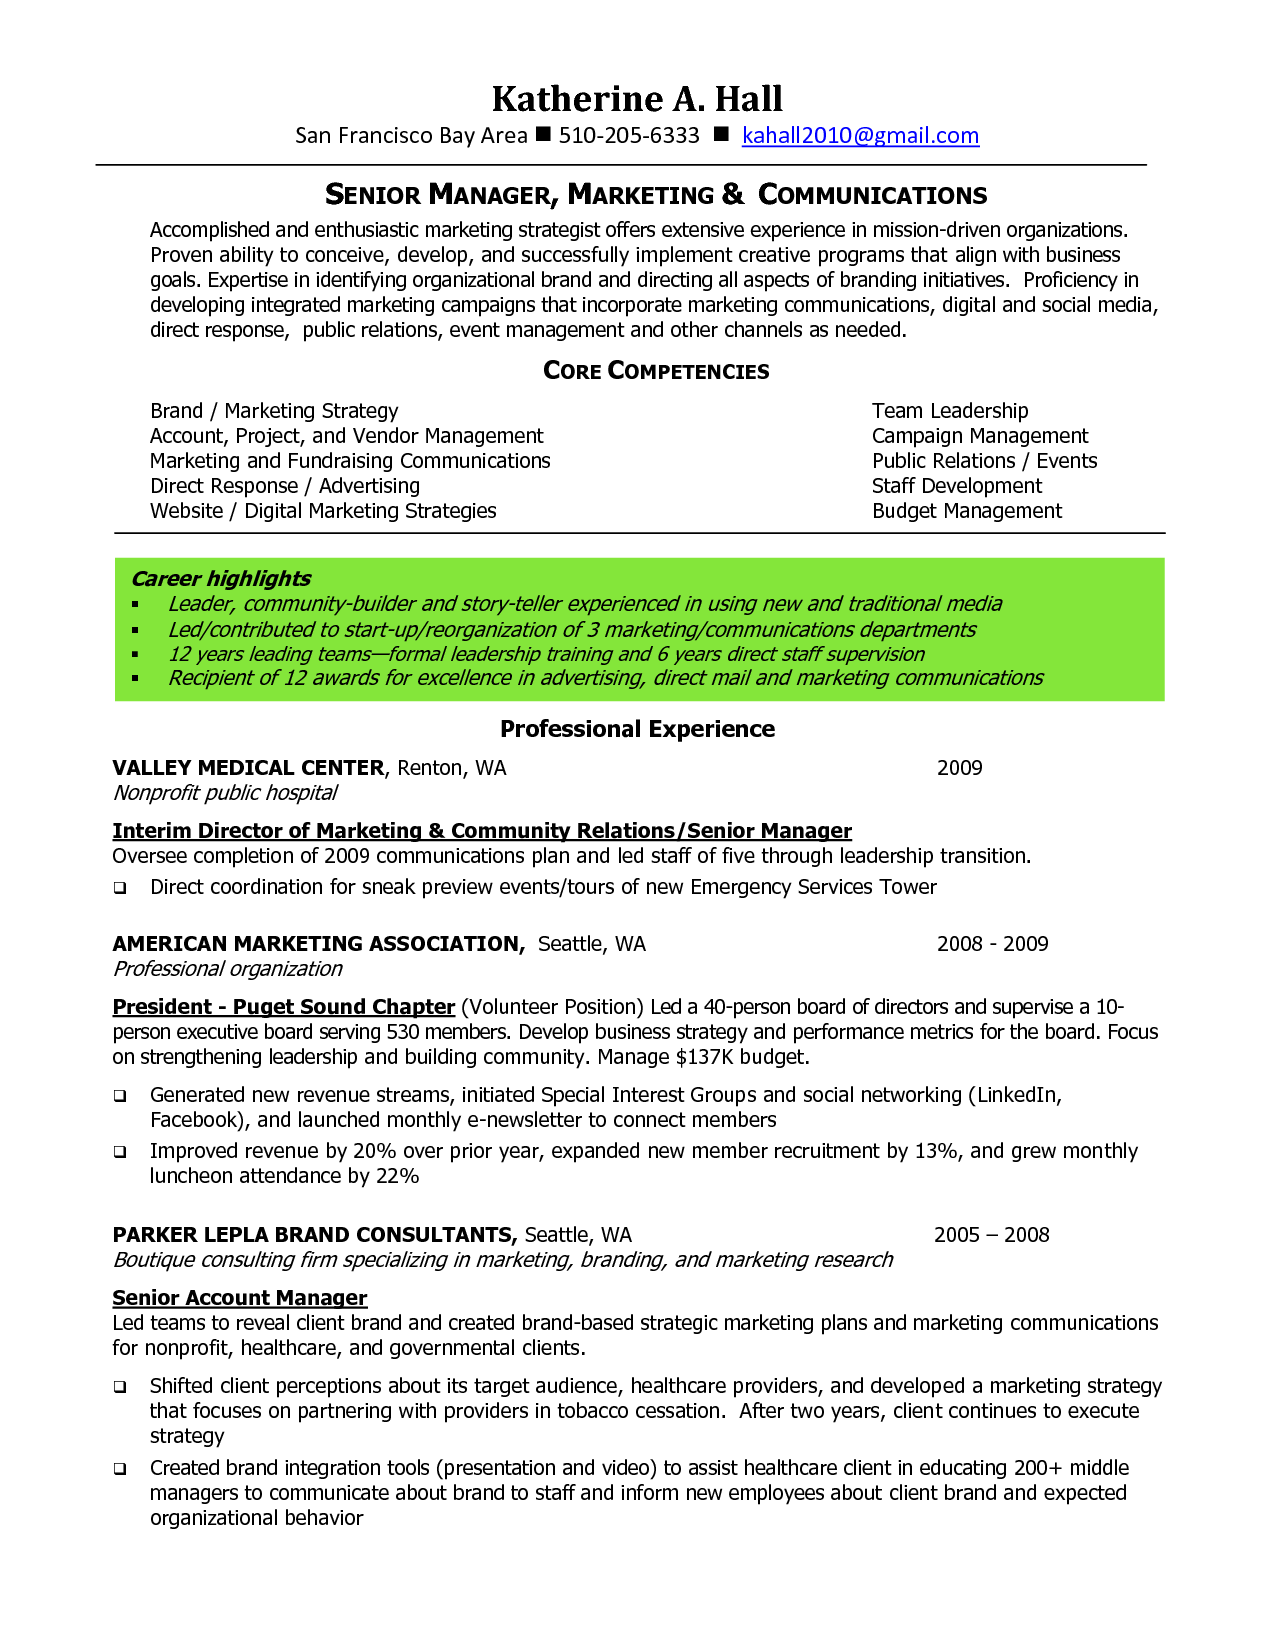 Marketing Specialist Resume Sample Resume For Marketing Program Manager Marketing Director